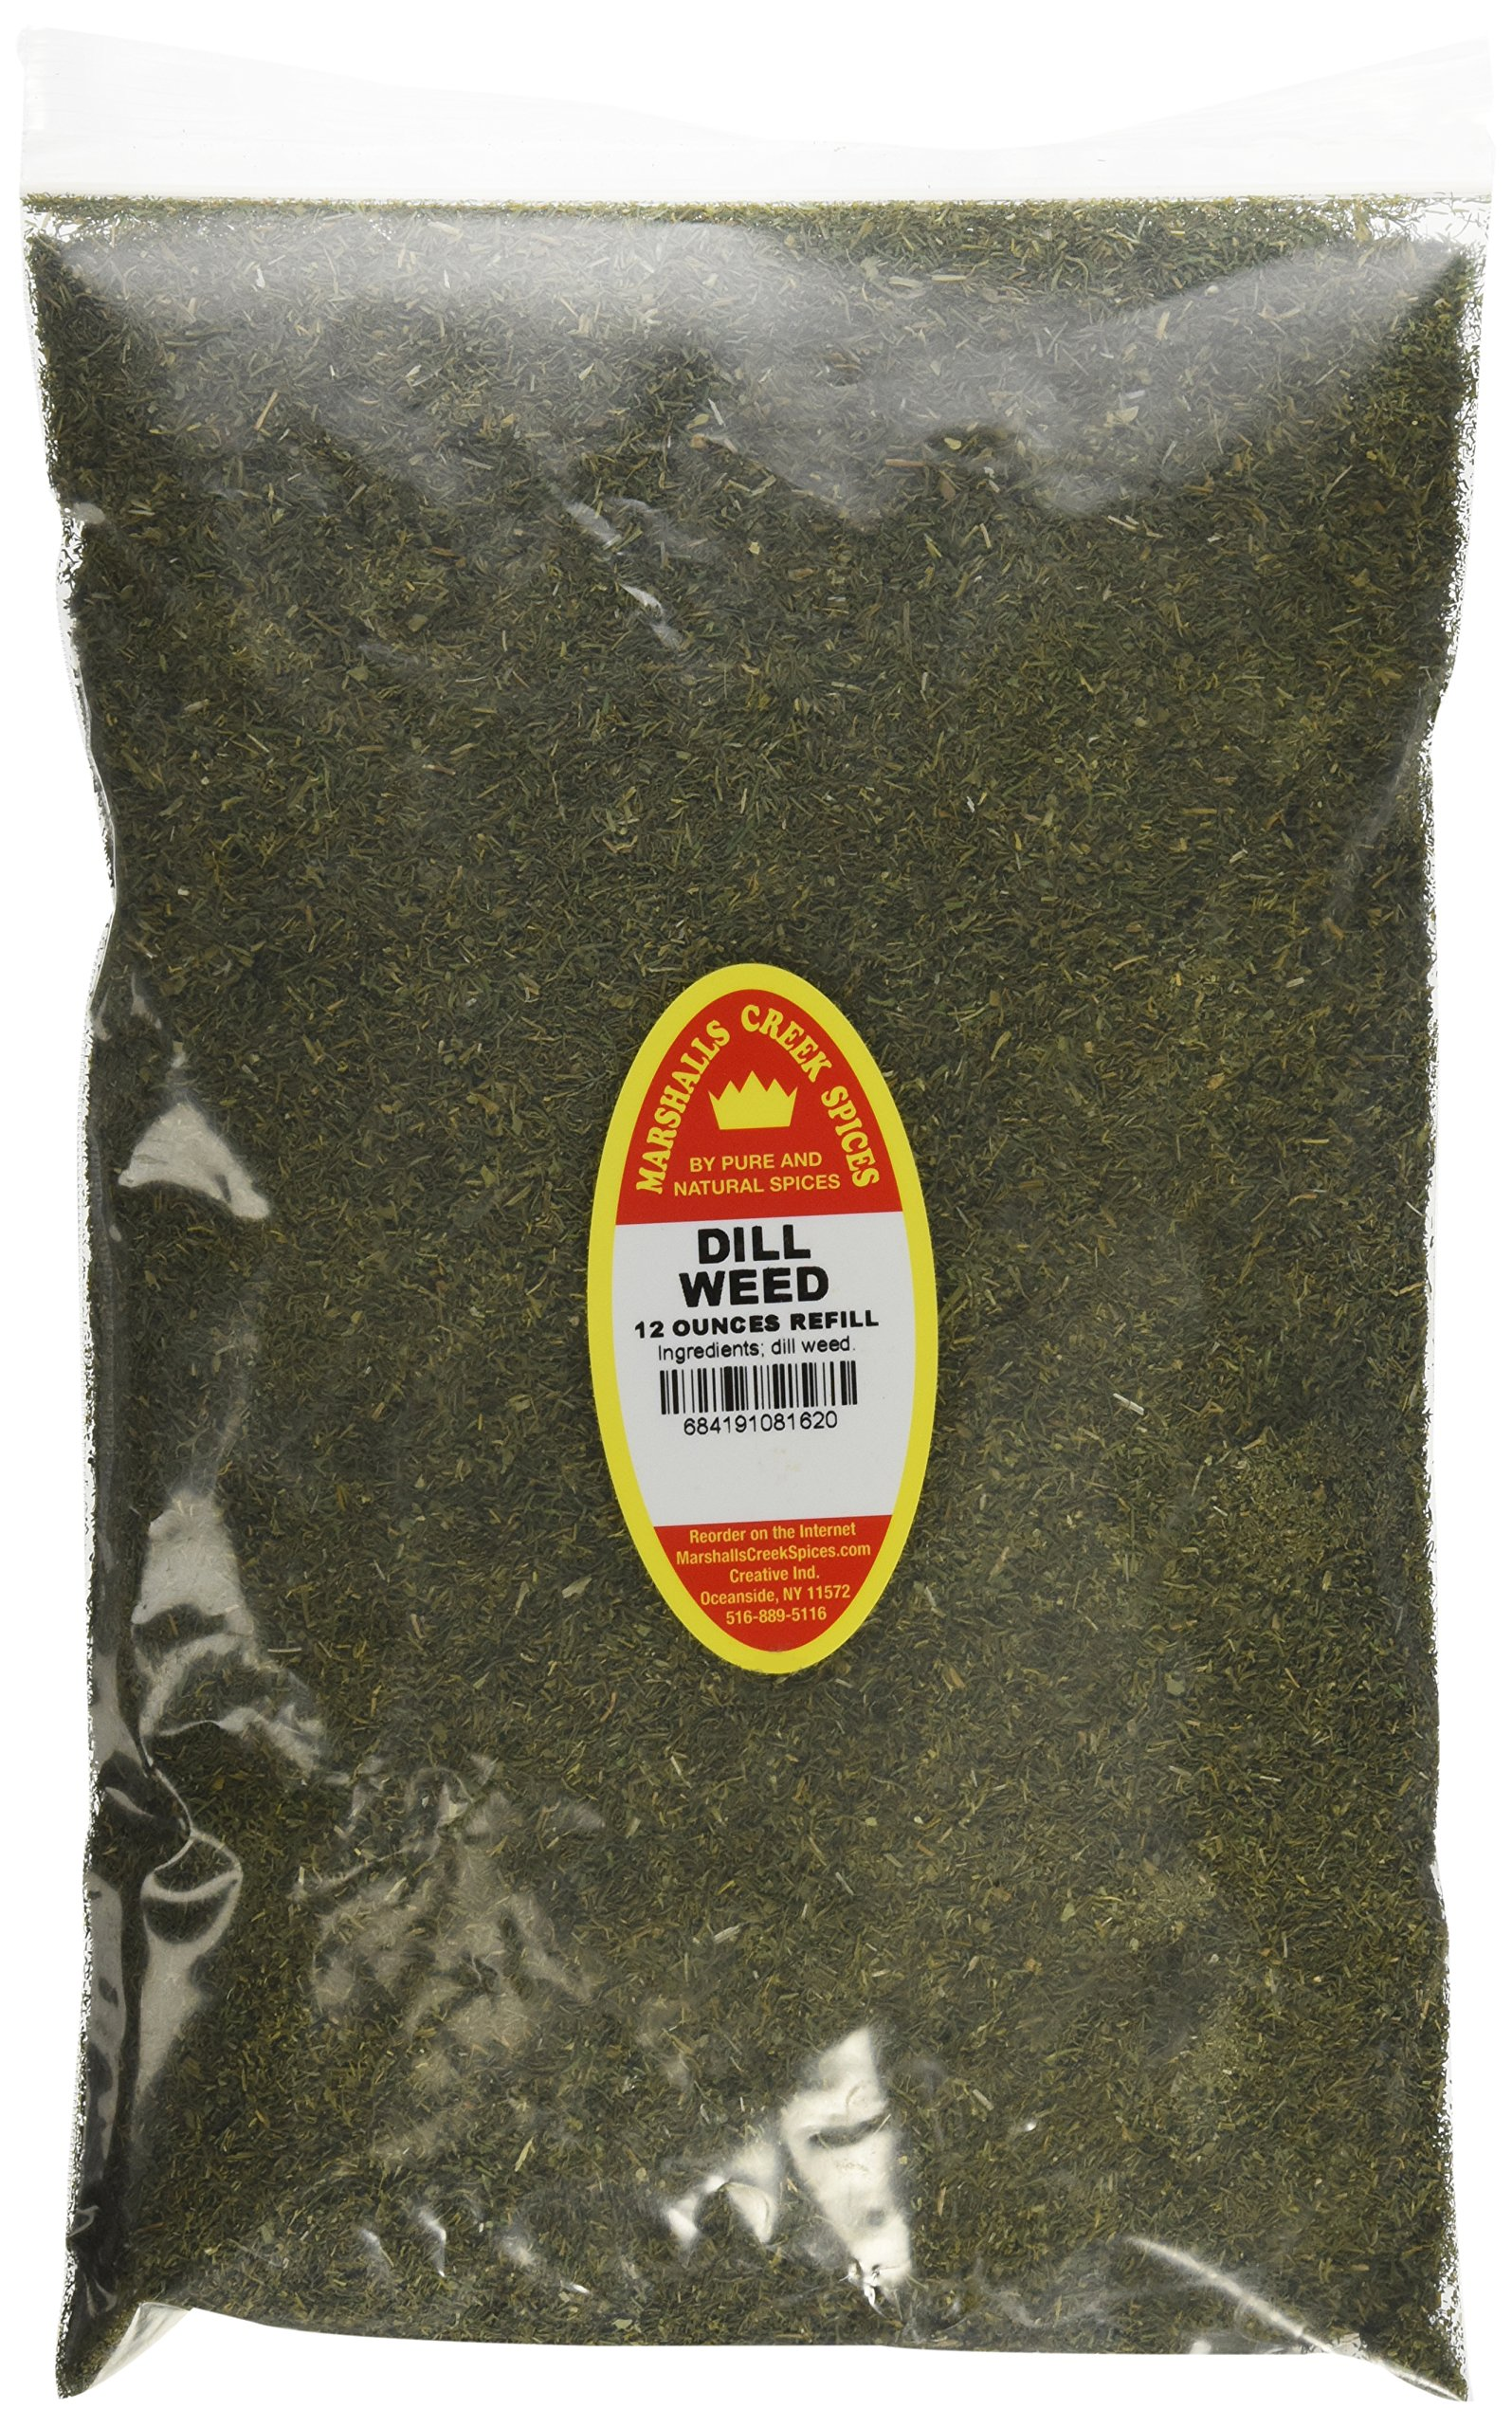 Marshalls Creek Spices Family Size Refill Dill Weed, 12 Ounces